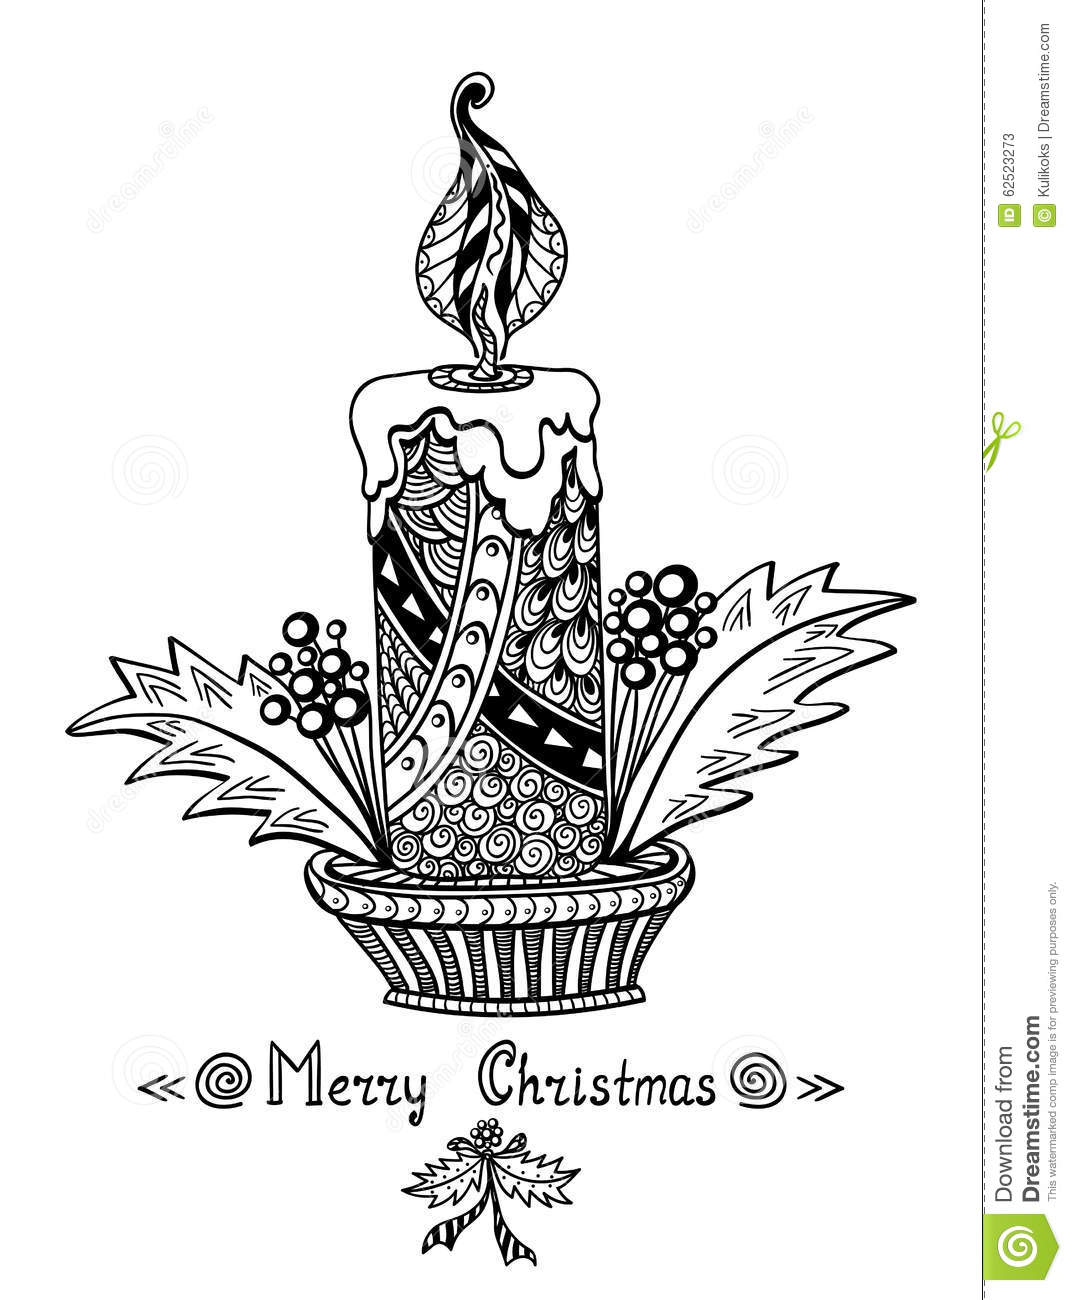 Zendoodle Coloring Pages Christmas Coloring Coloring Pages